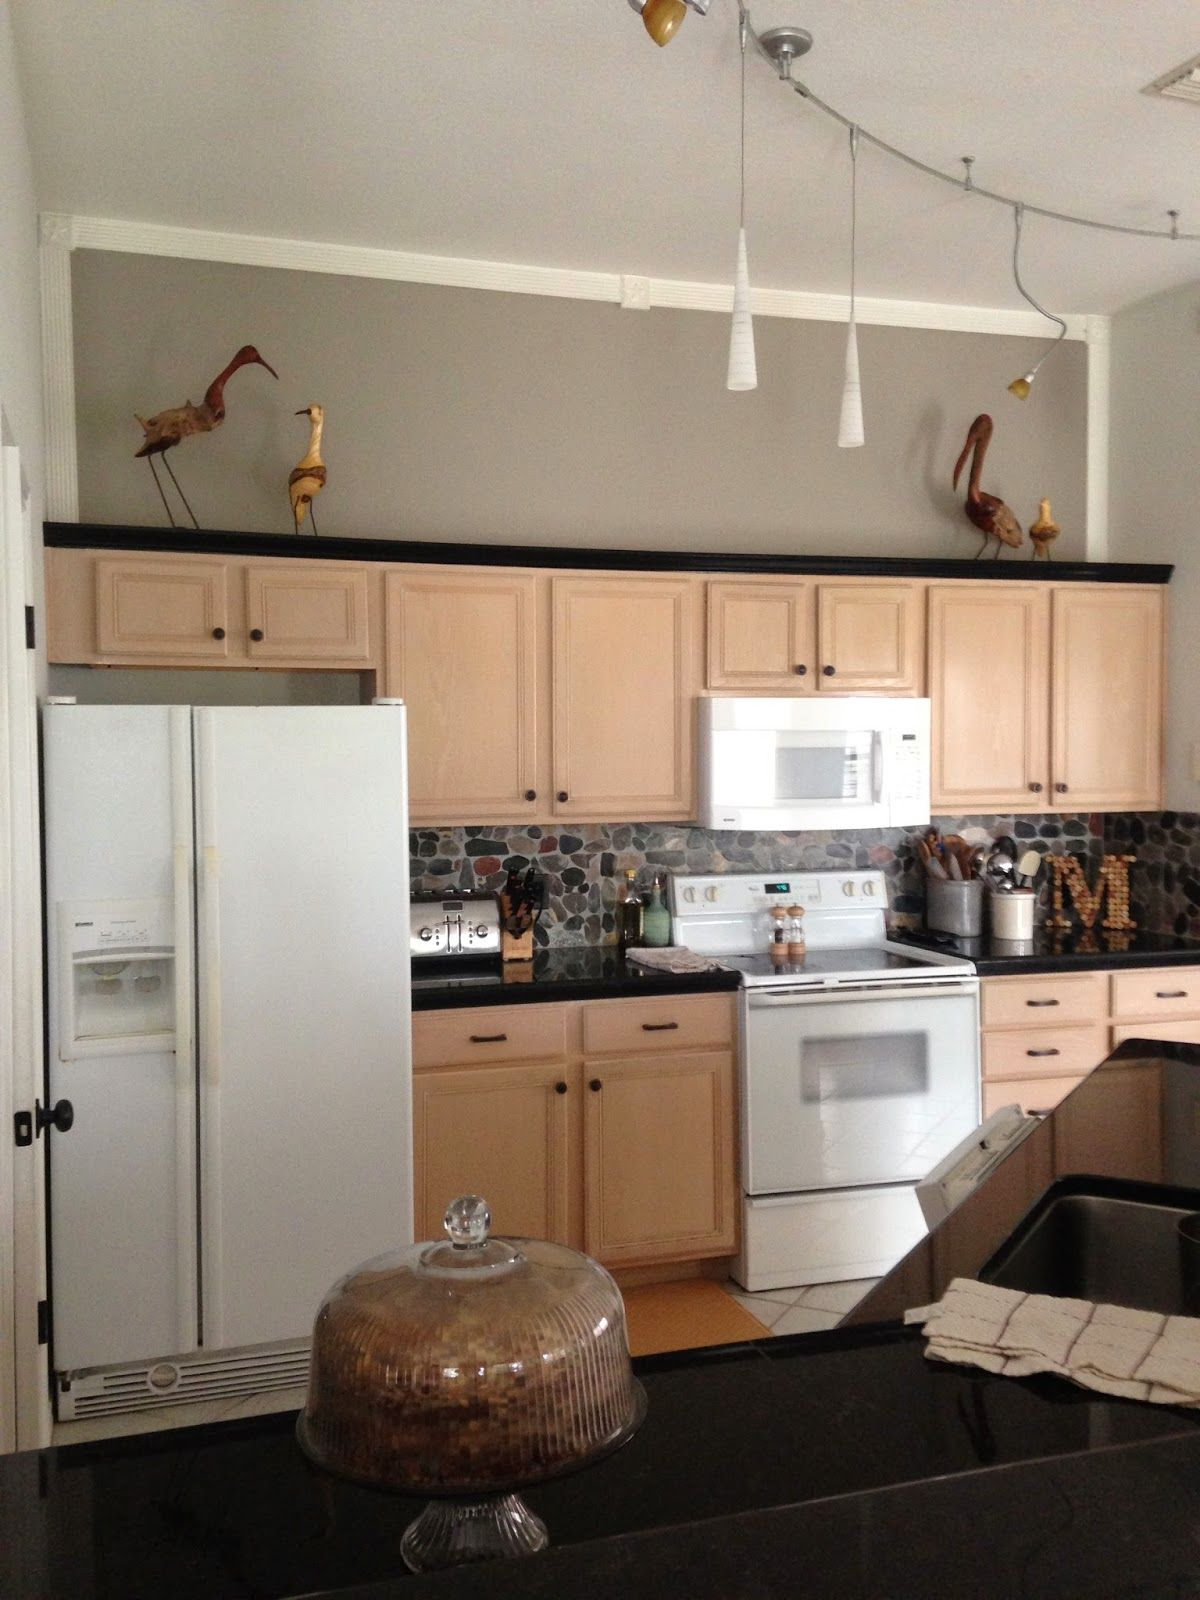 Best Kitchen Gallery: Making Unsightly Pickled Oak Cabi S Look Quite A Bit Less Pink By of White Pickled Cabinets Kitchen on rachelxblog.com